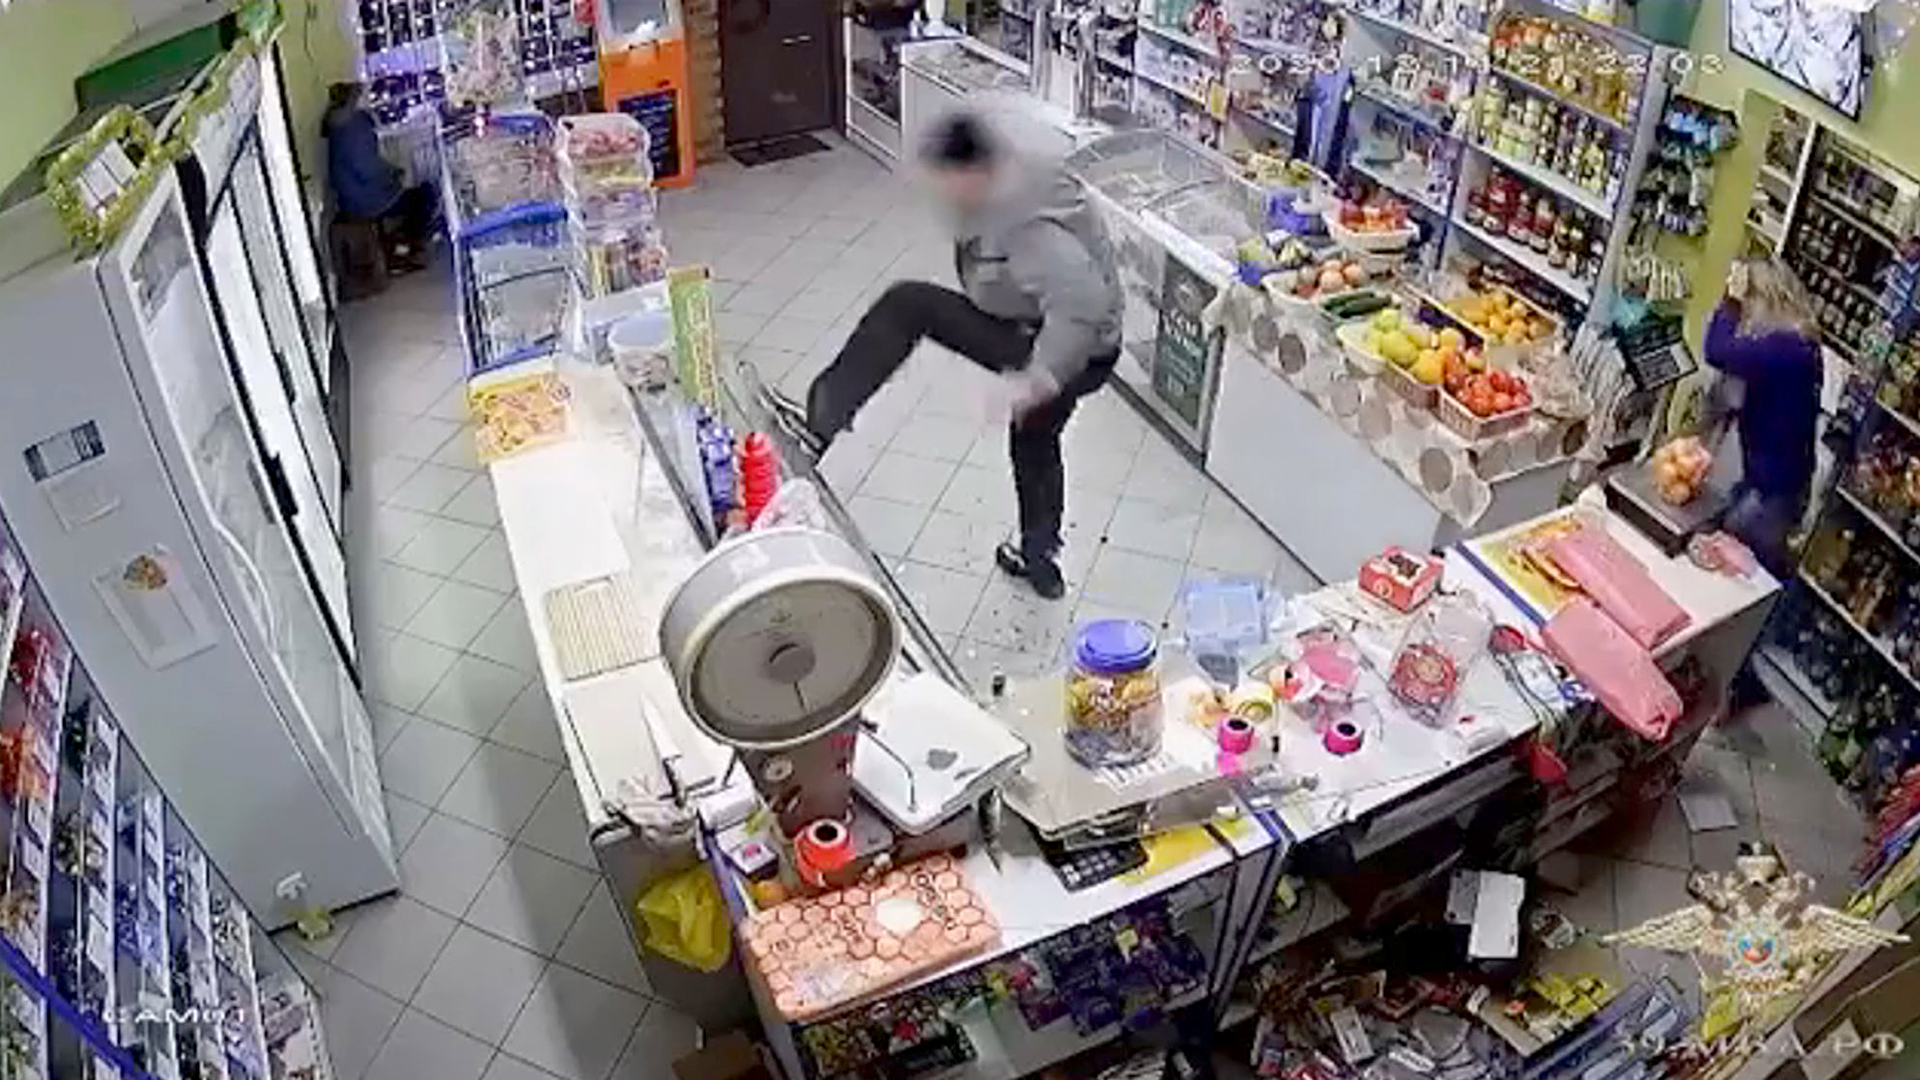 VIDEO: Boys In Booze: Cops Seize Drunk Who Smashed Up Shop That Refused To Sell Him Alcohol